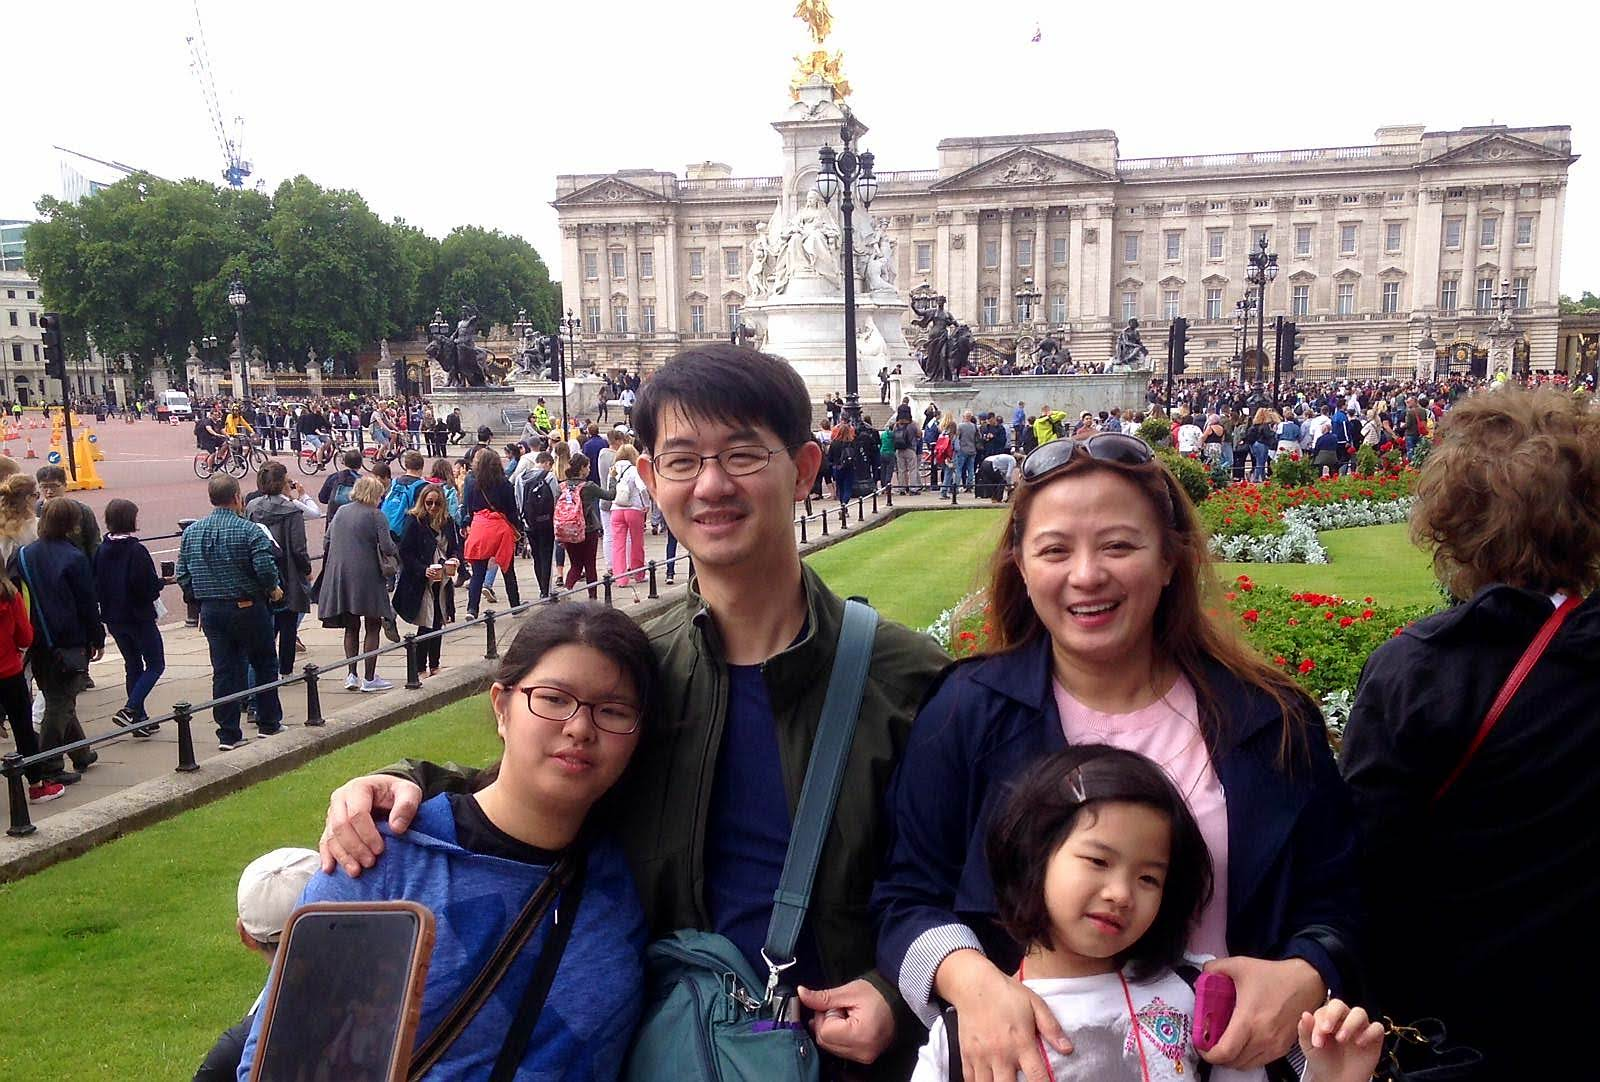 Family stop at Buckingham palace on london sightseeing taxi tour